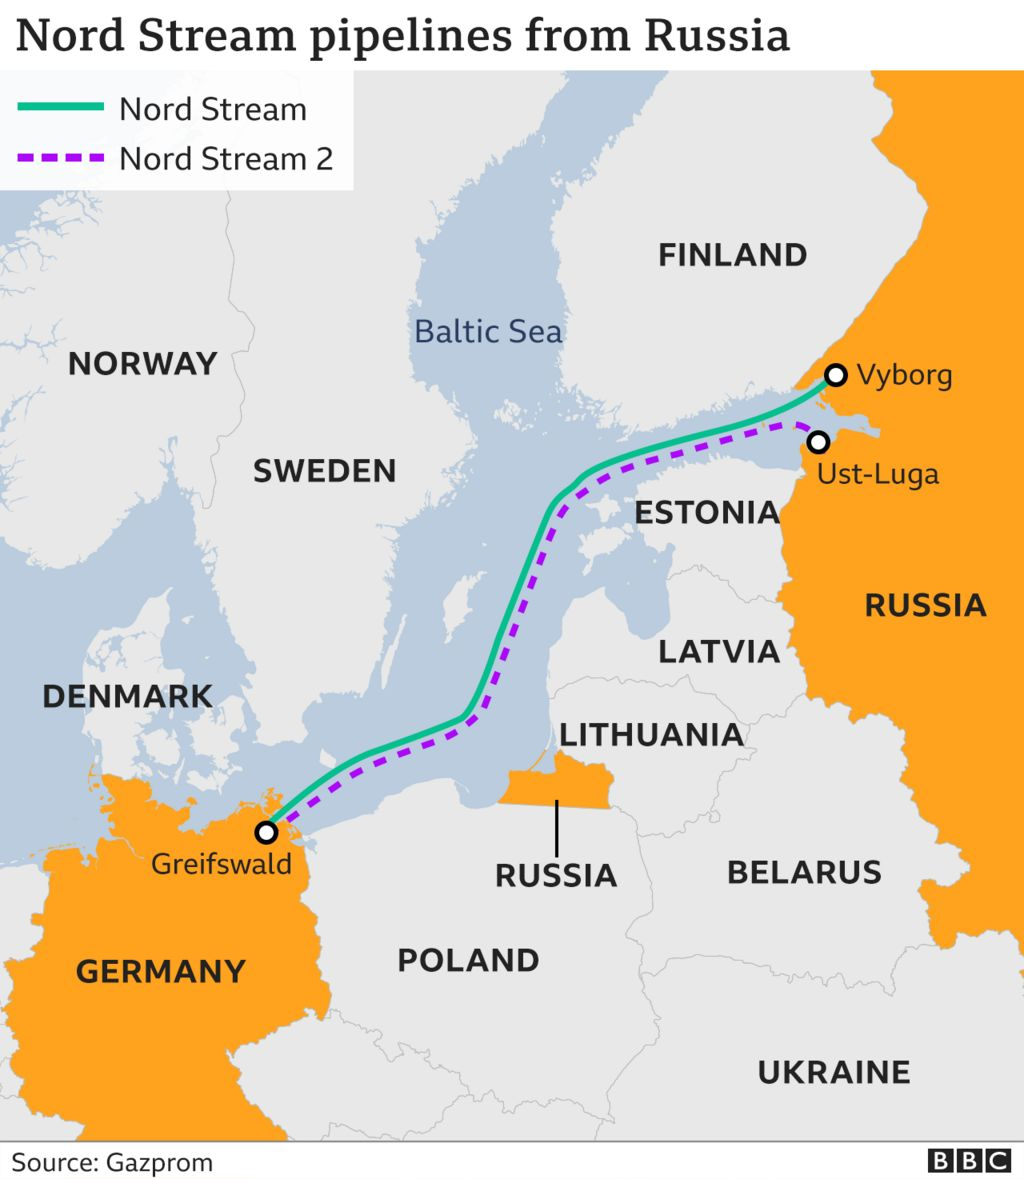 Nord Stream 2: Gazprom says new pipeline to Germany is ready thumbnail